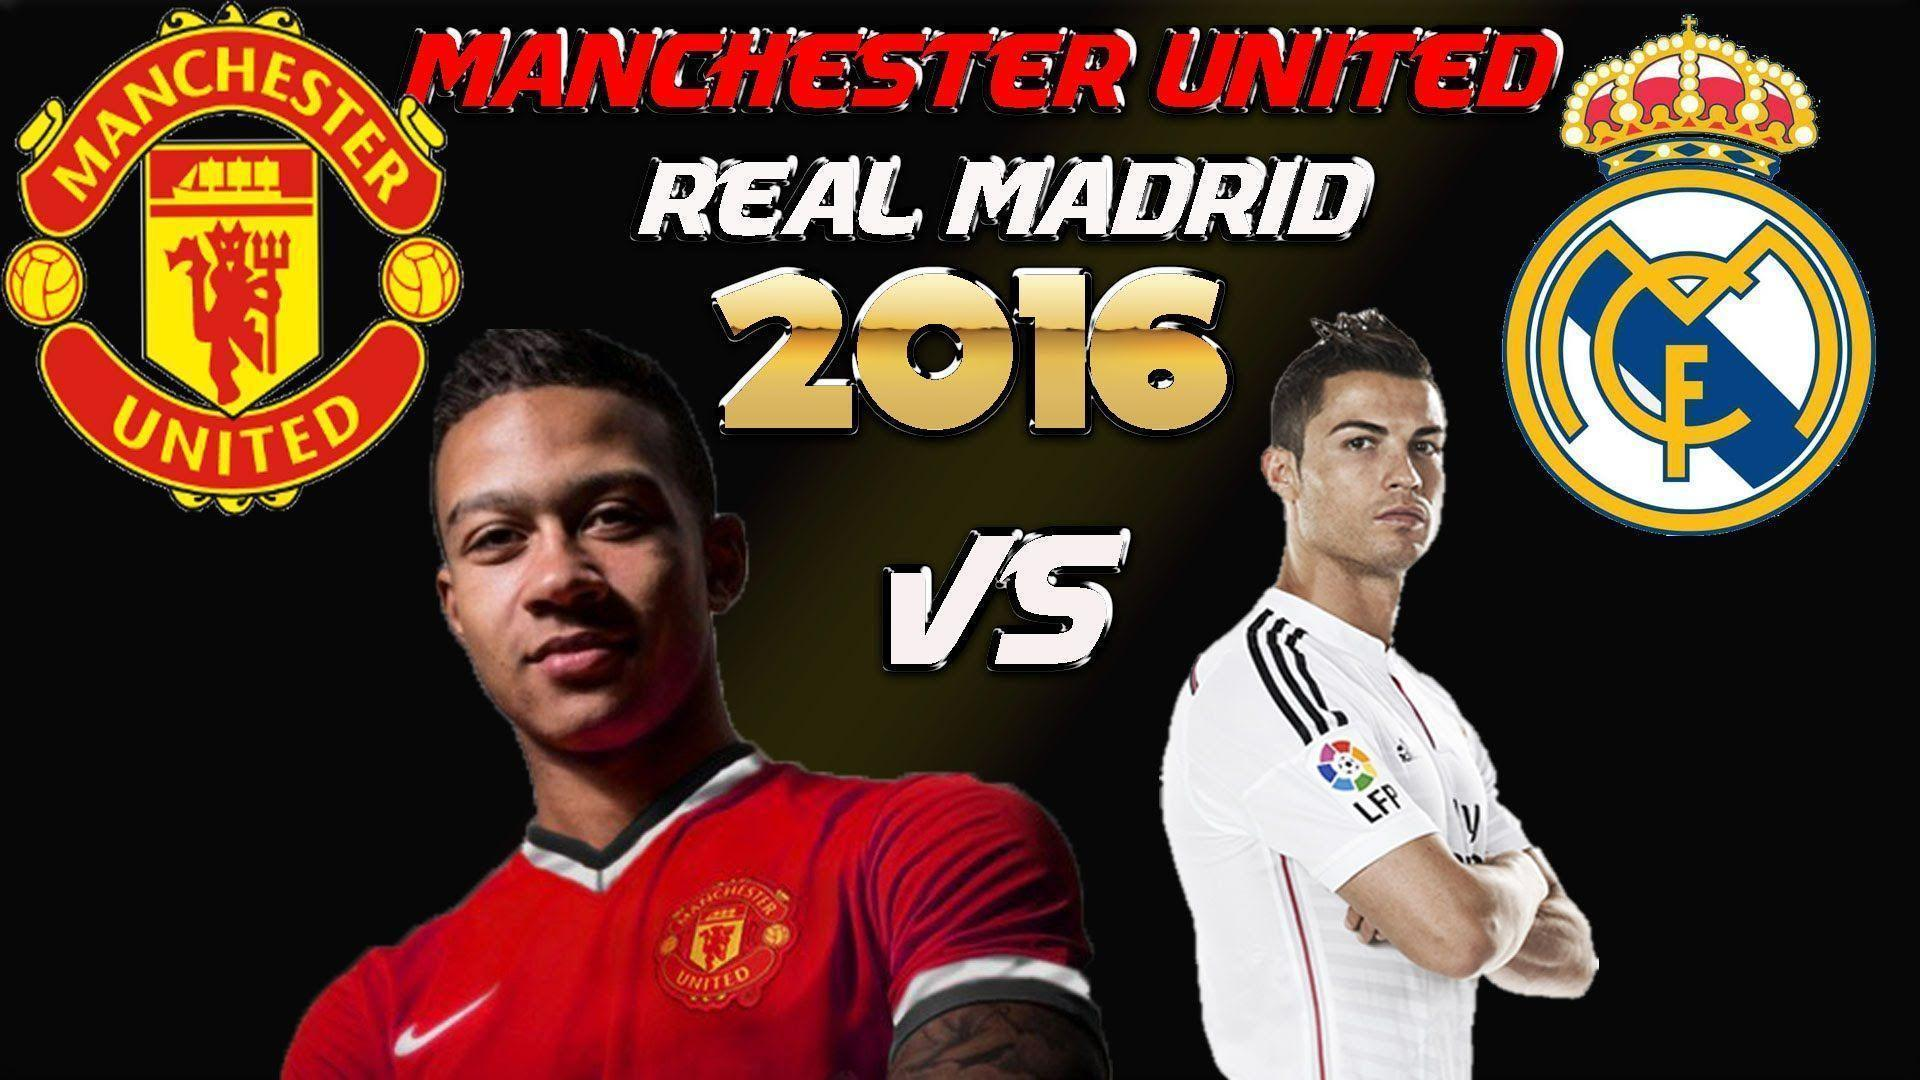 MANCHESTER UNITED 2016 vs REAL MADRID 2016